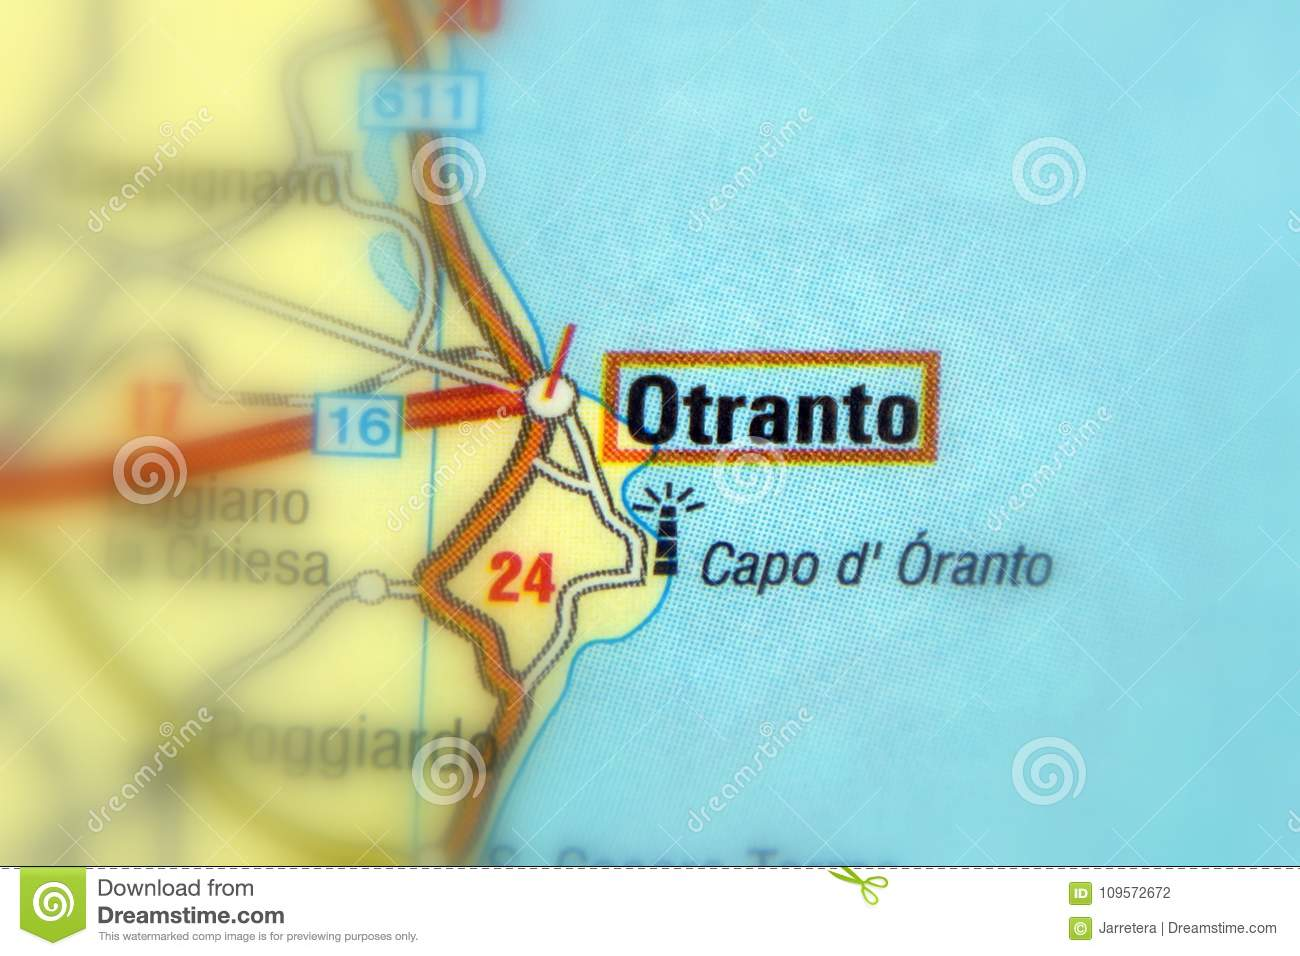 Otranto Italy Map.Otranto Italy Europe Stock Photo Image Of Land Focus 109572672